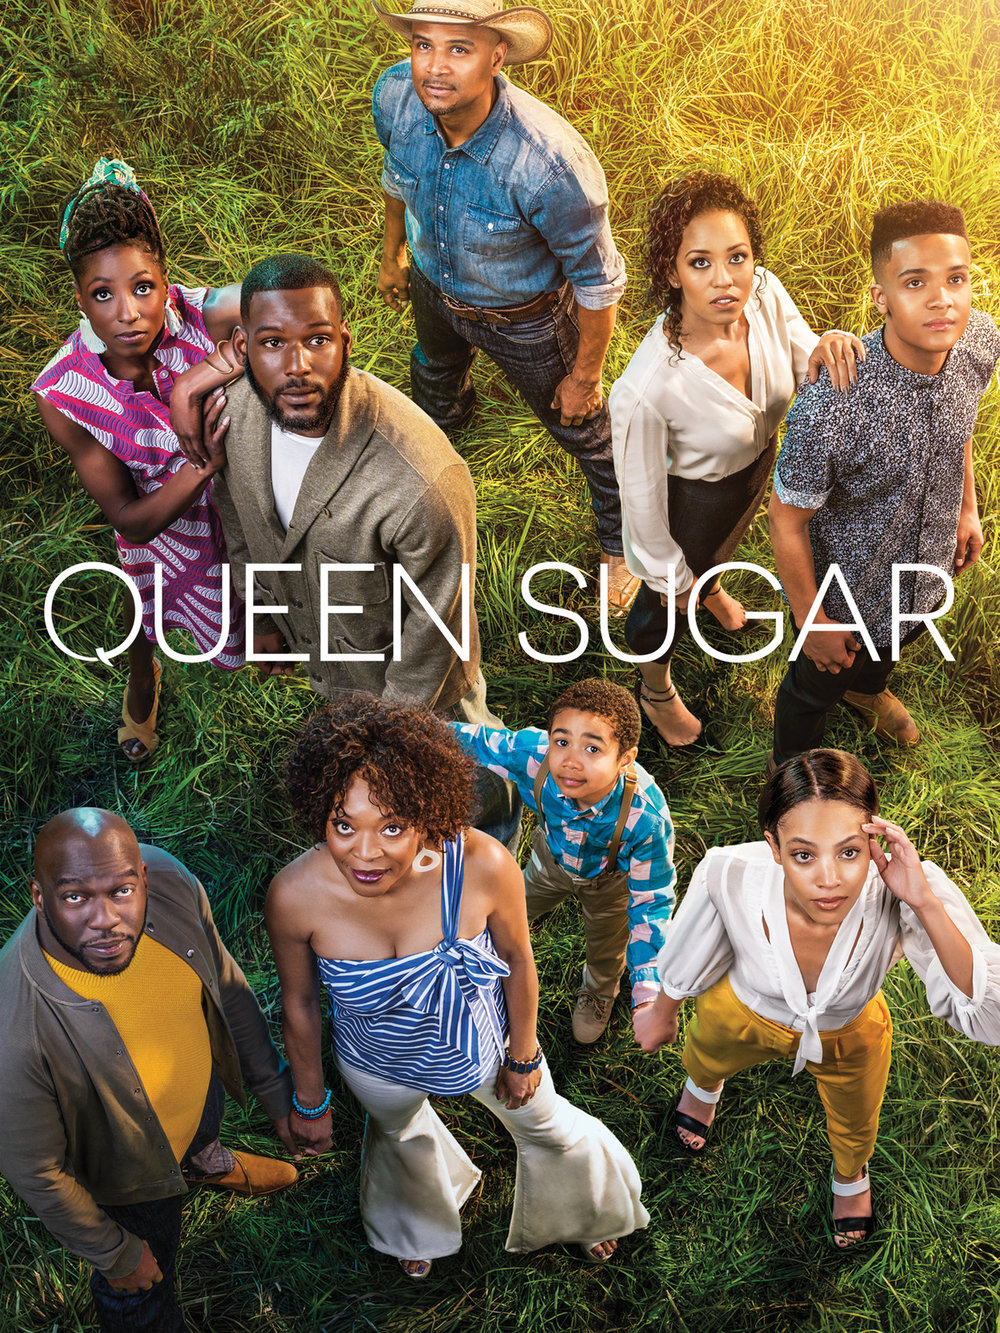 Season 3 of Queen Sugar, the family drama from Ana DuVernay, premiered in May 2018